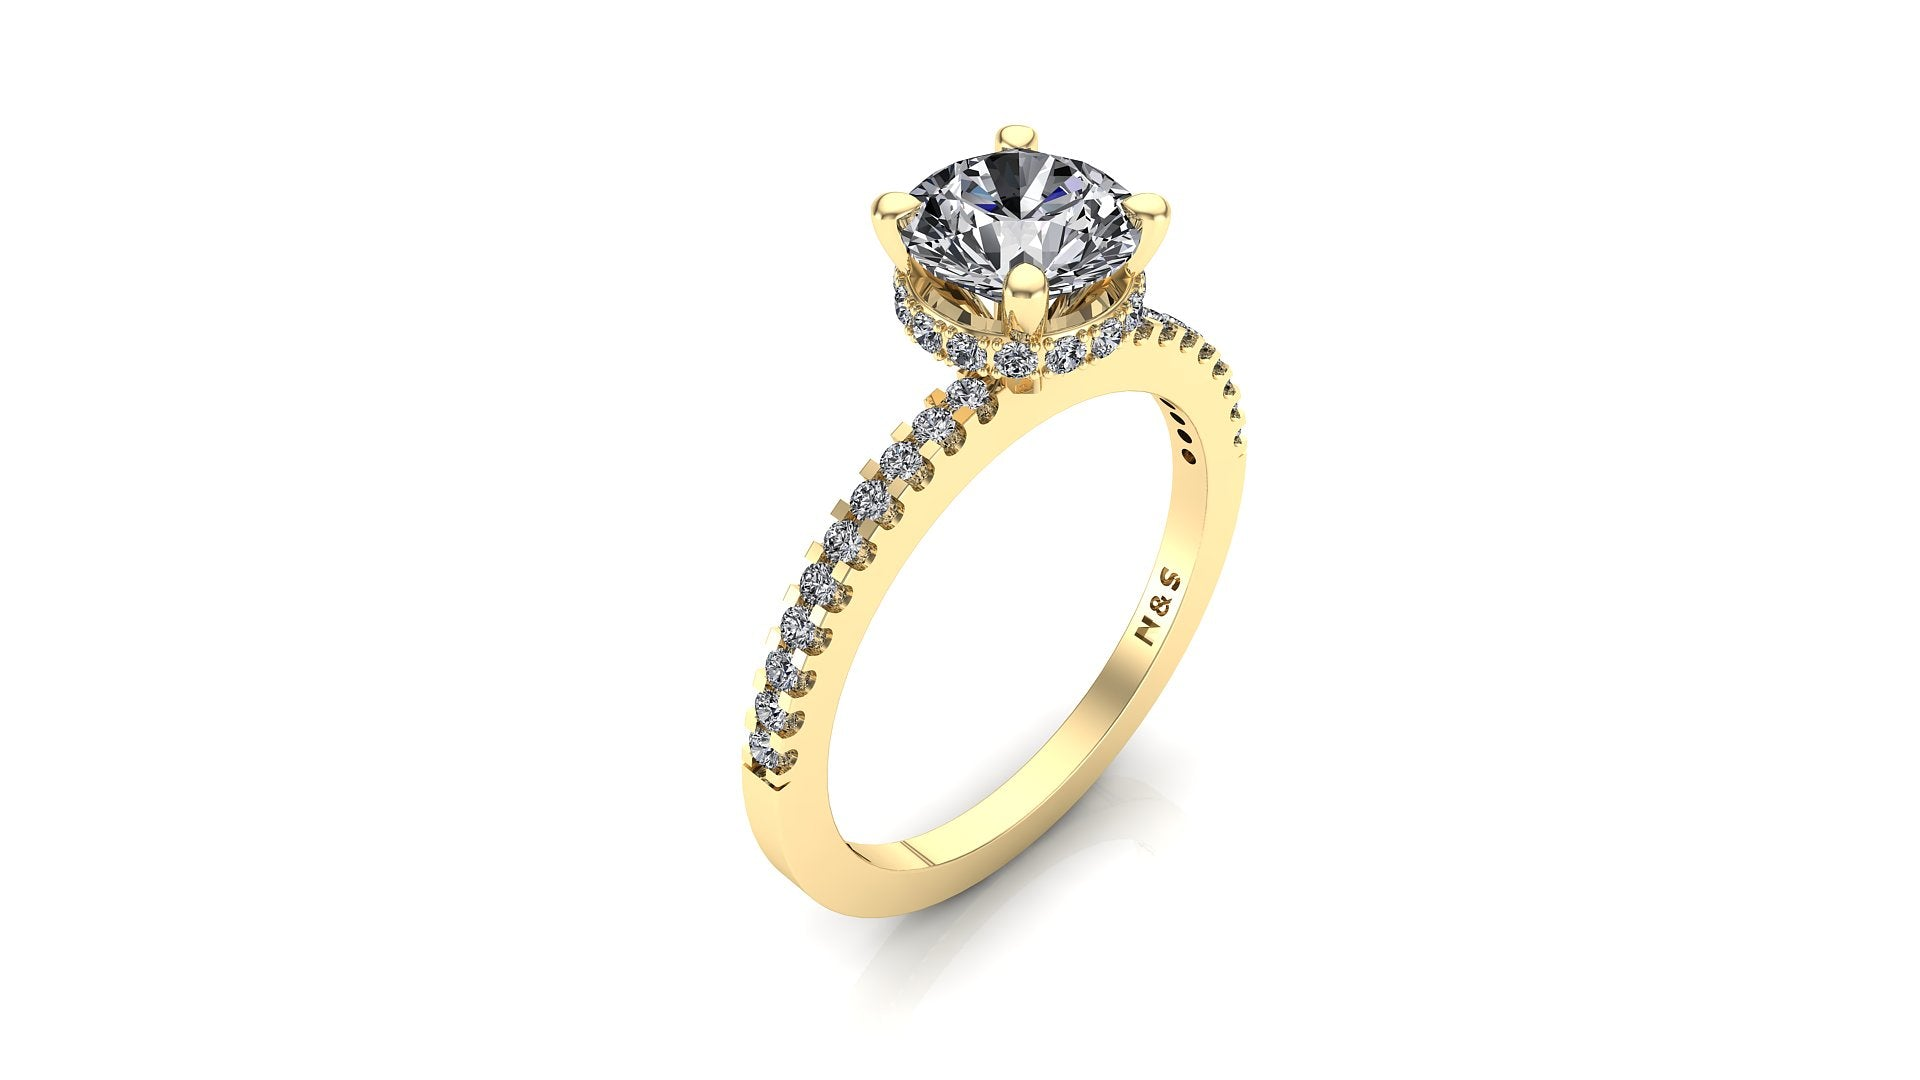 7mm (1.20ct) Katie ForeverOne Round Moissanite Diamond Underhalo Engagement Ring 14K Gold MOENG026